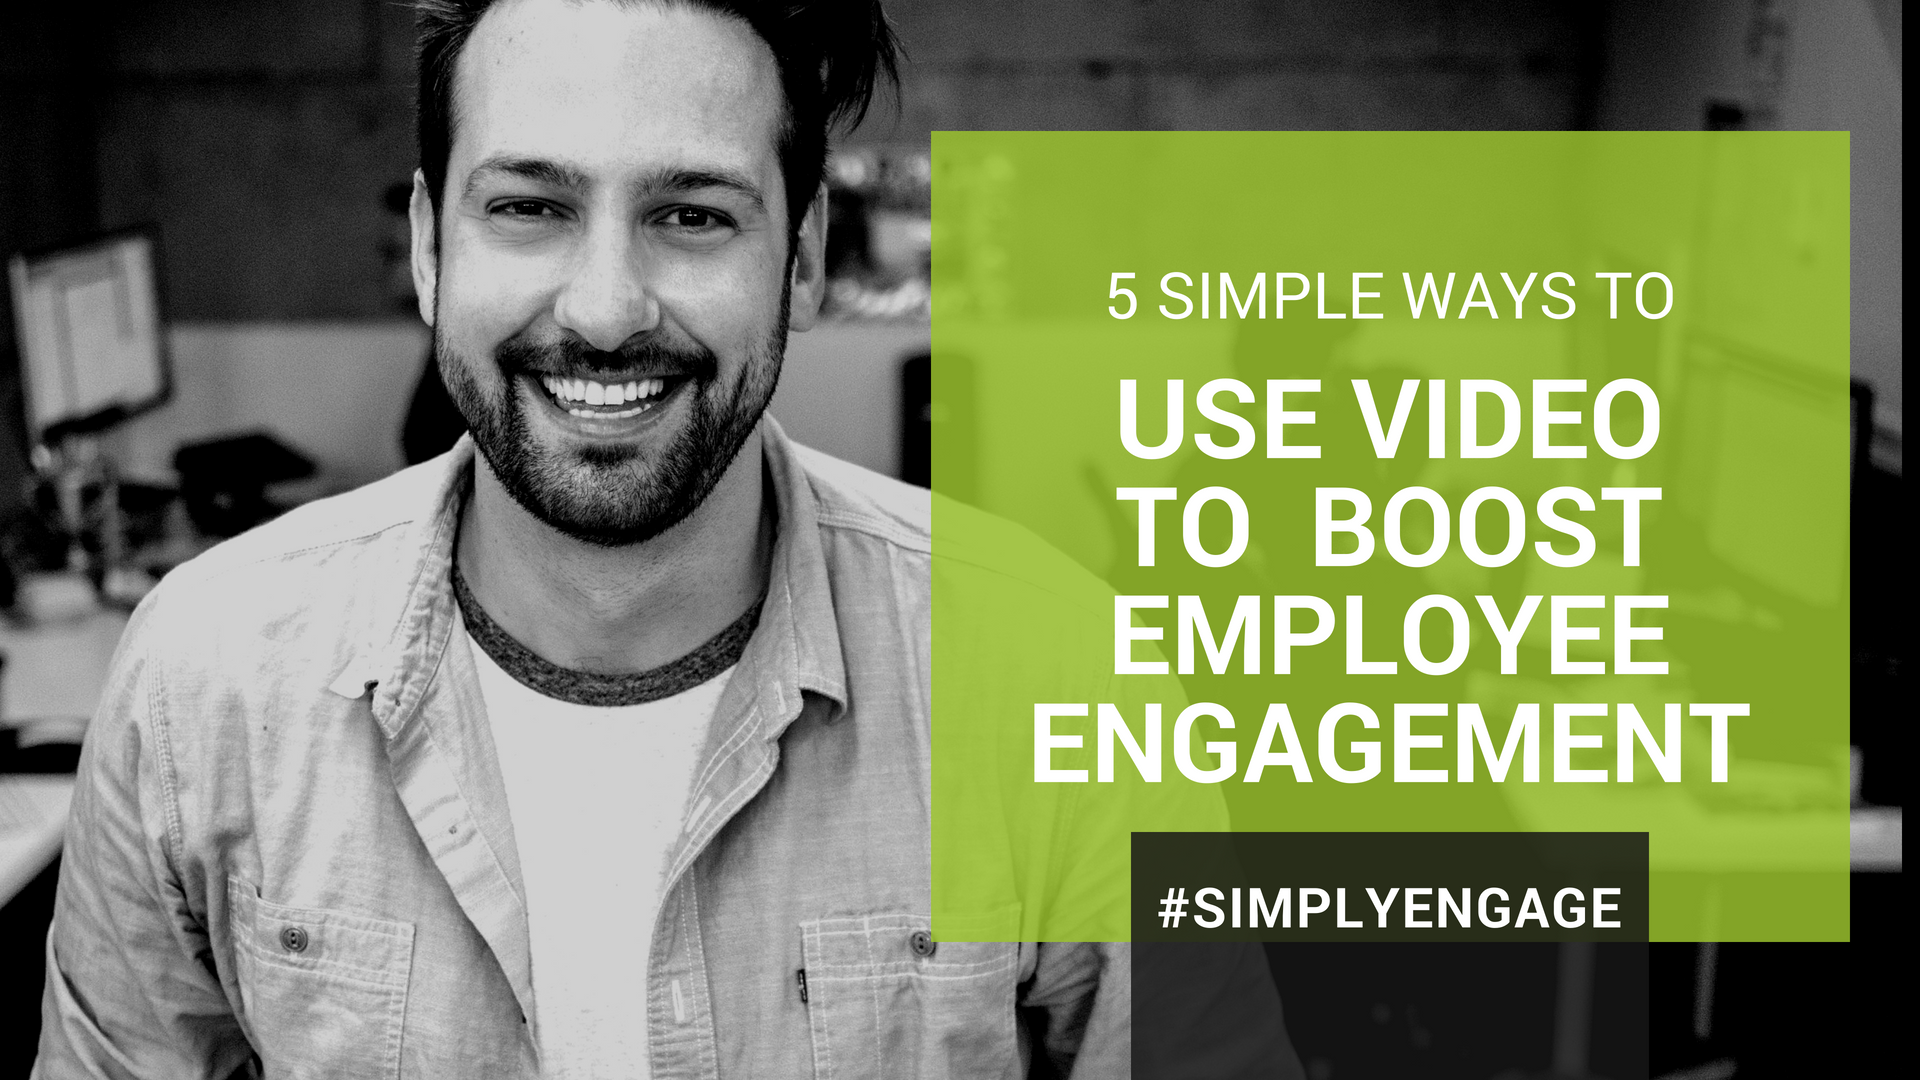 5 simple ways to use video to reach employees and boost engagement | InspireHUB